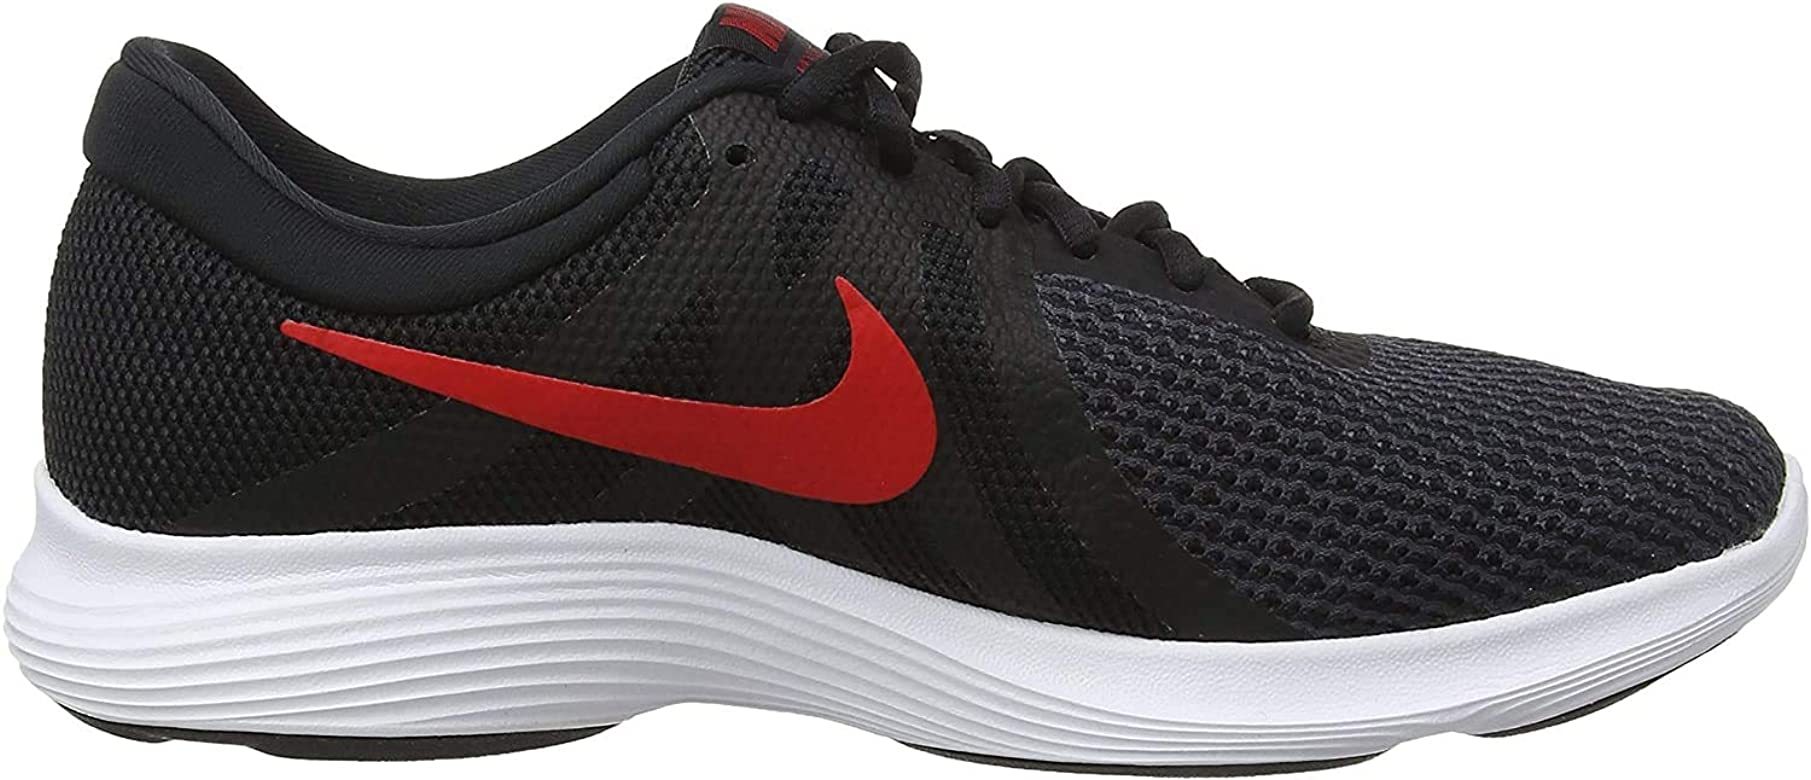 Nike Revolution 4, Zapatillas de Running para Hombre, Multicolor (Black/University Red/Oil Grey/White 061), 38.5 EU: Amazon.es: Zapatos y complementos